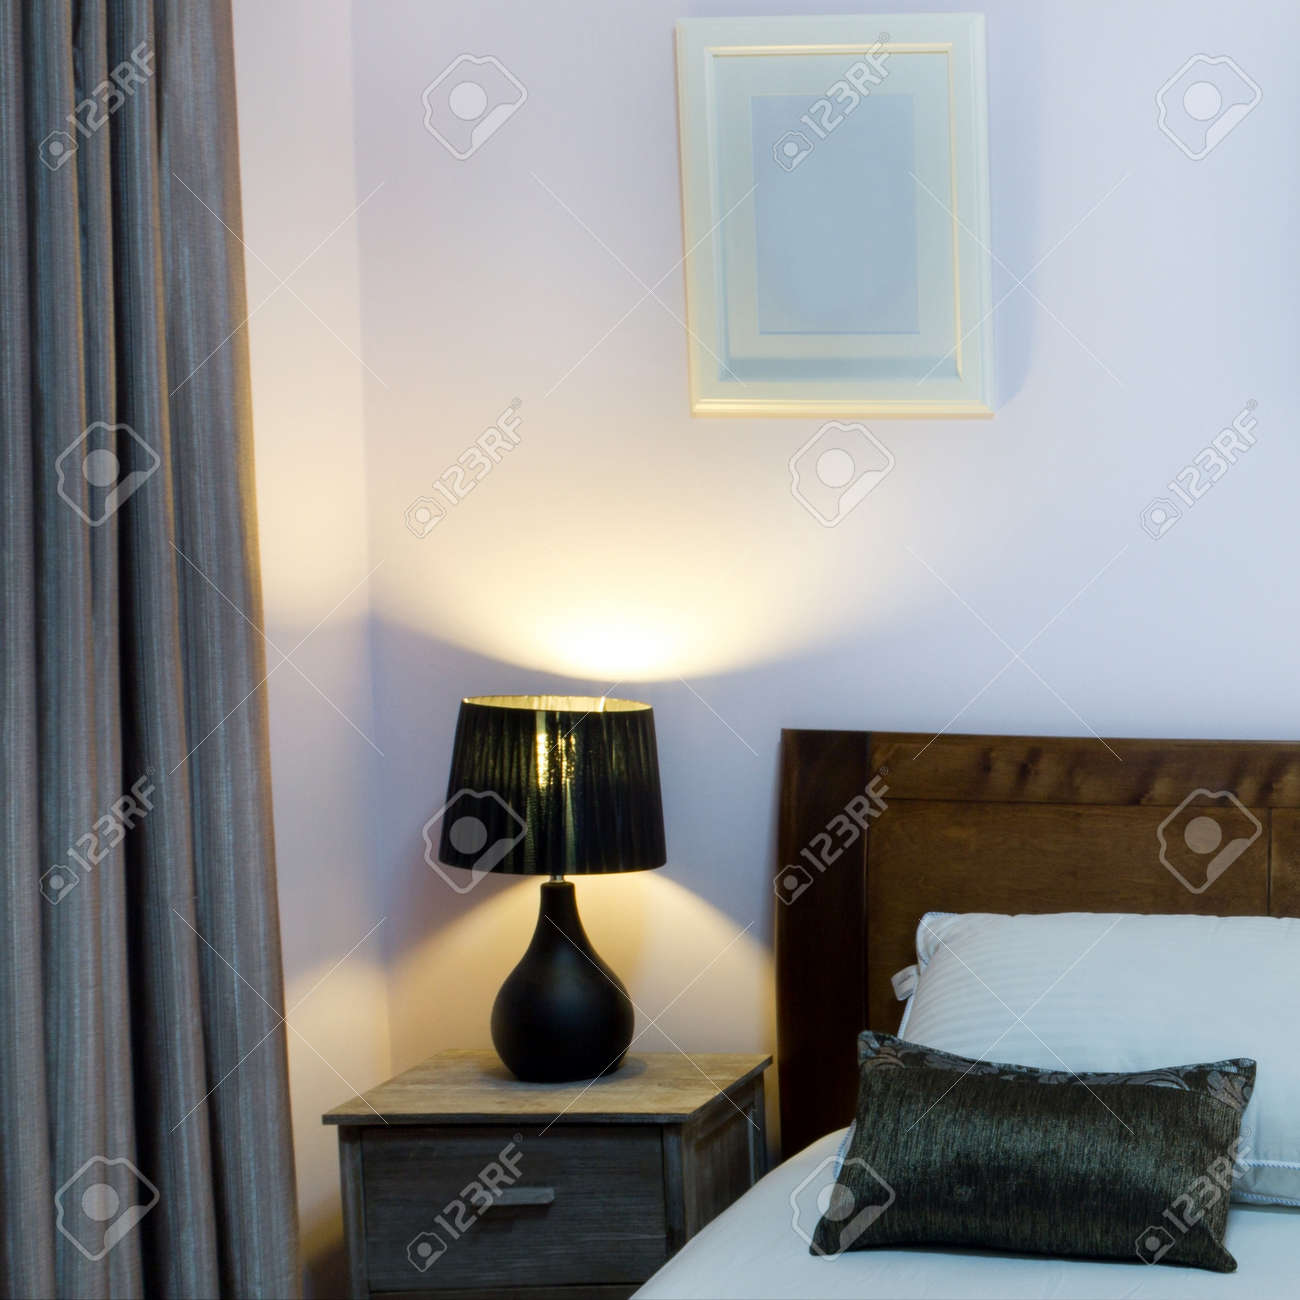 Bedroom with furnishings in a new house. Stock Photo - 13985541